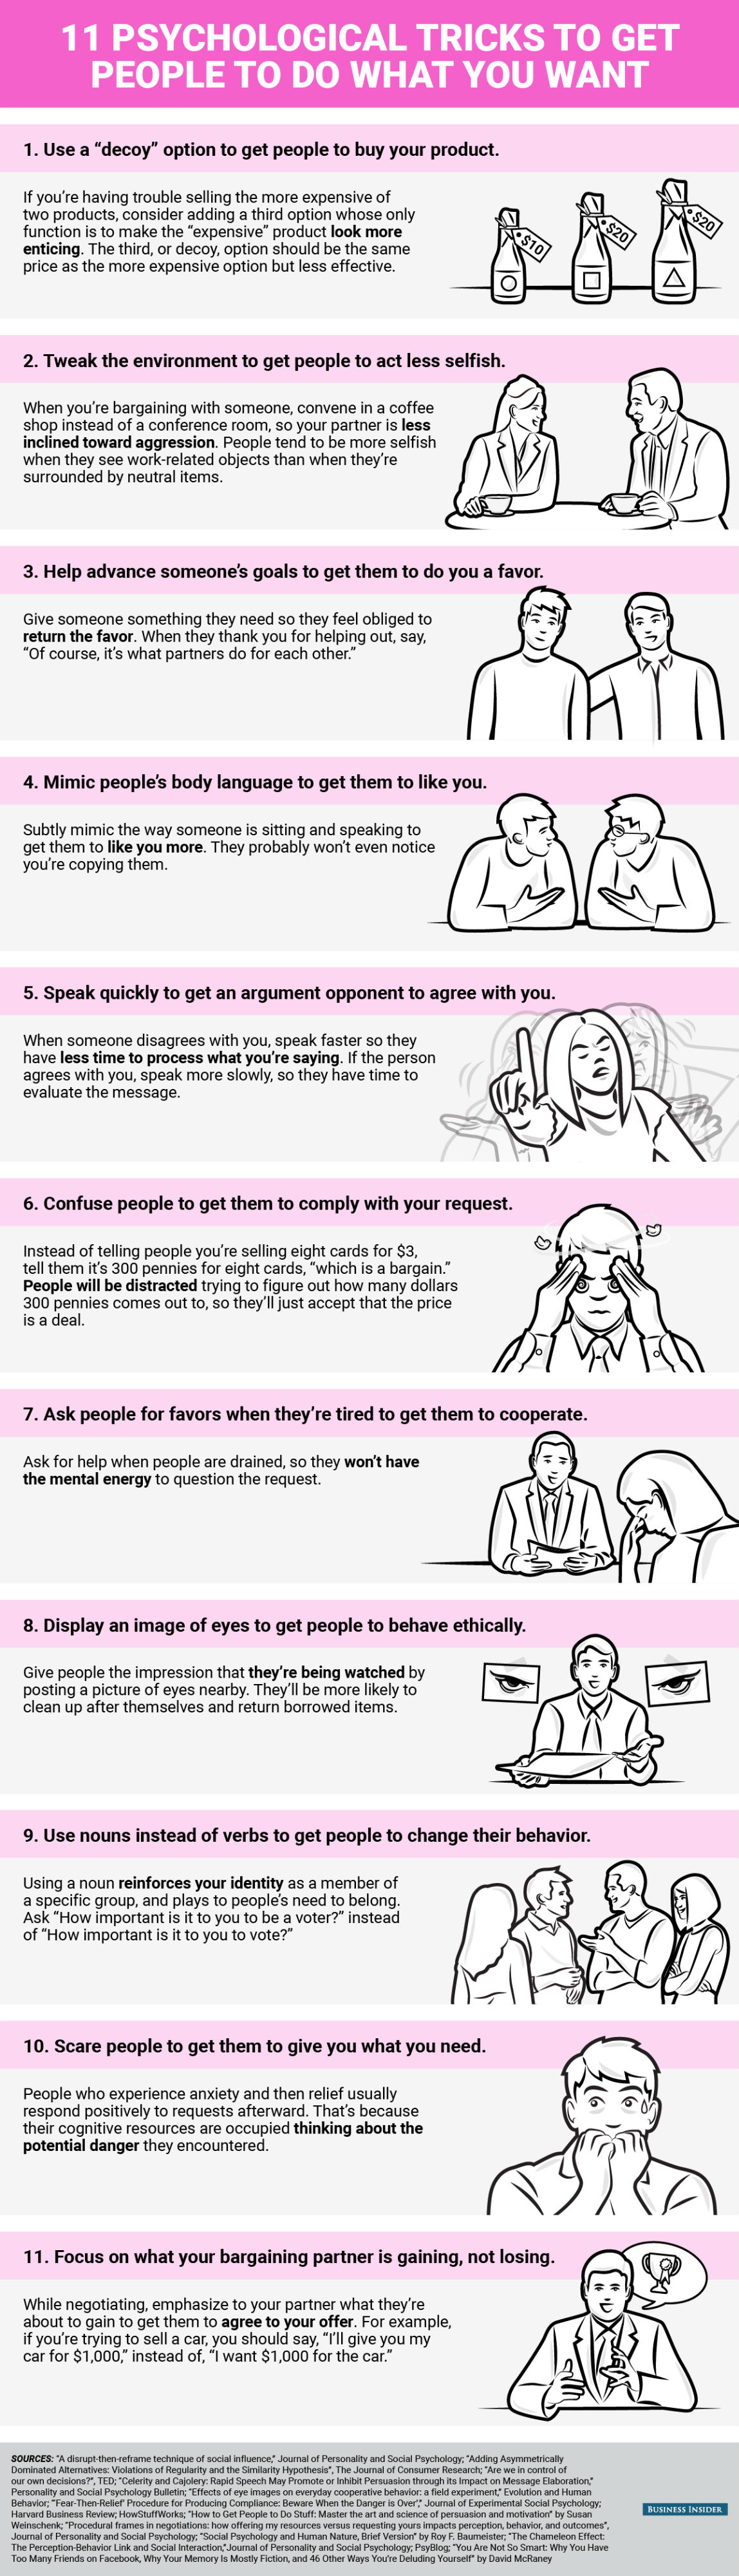 Psychological Tricks To Use At Work [Infographic]